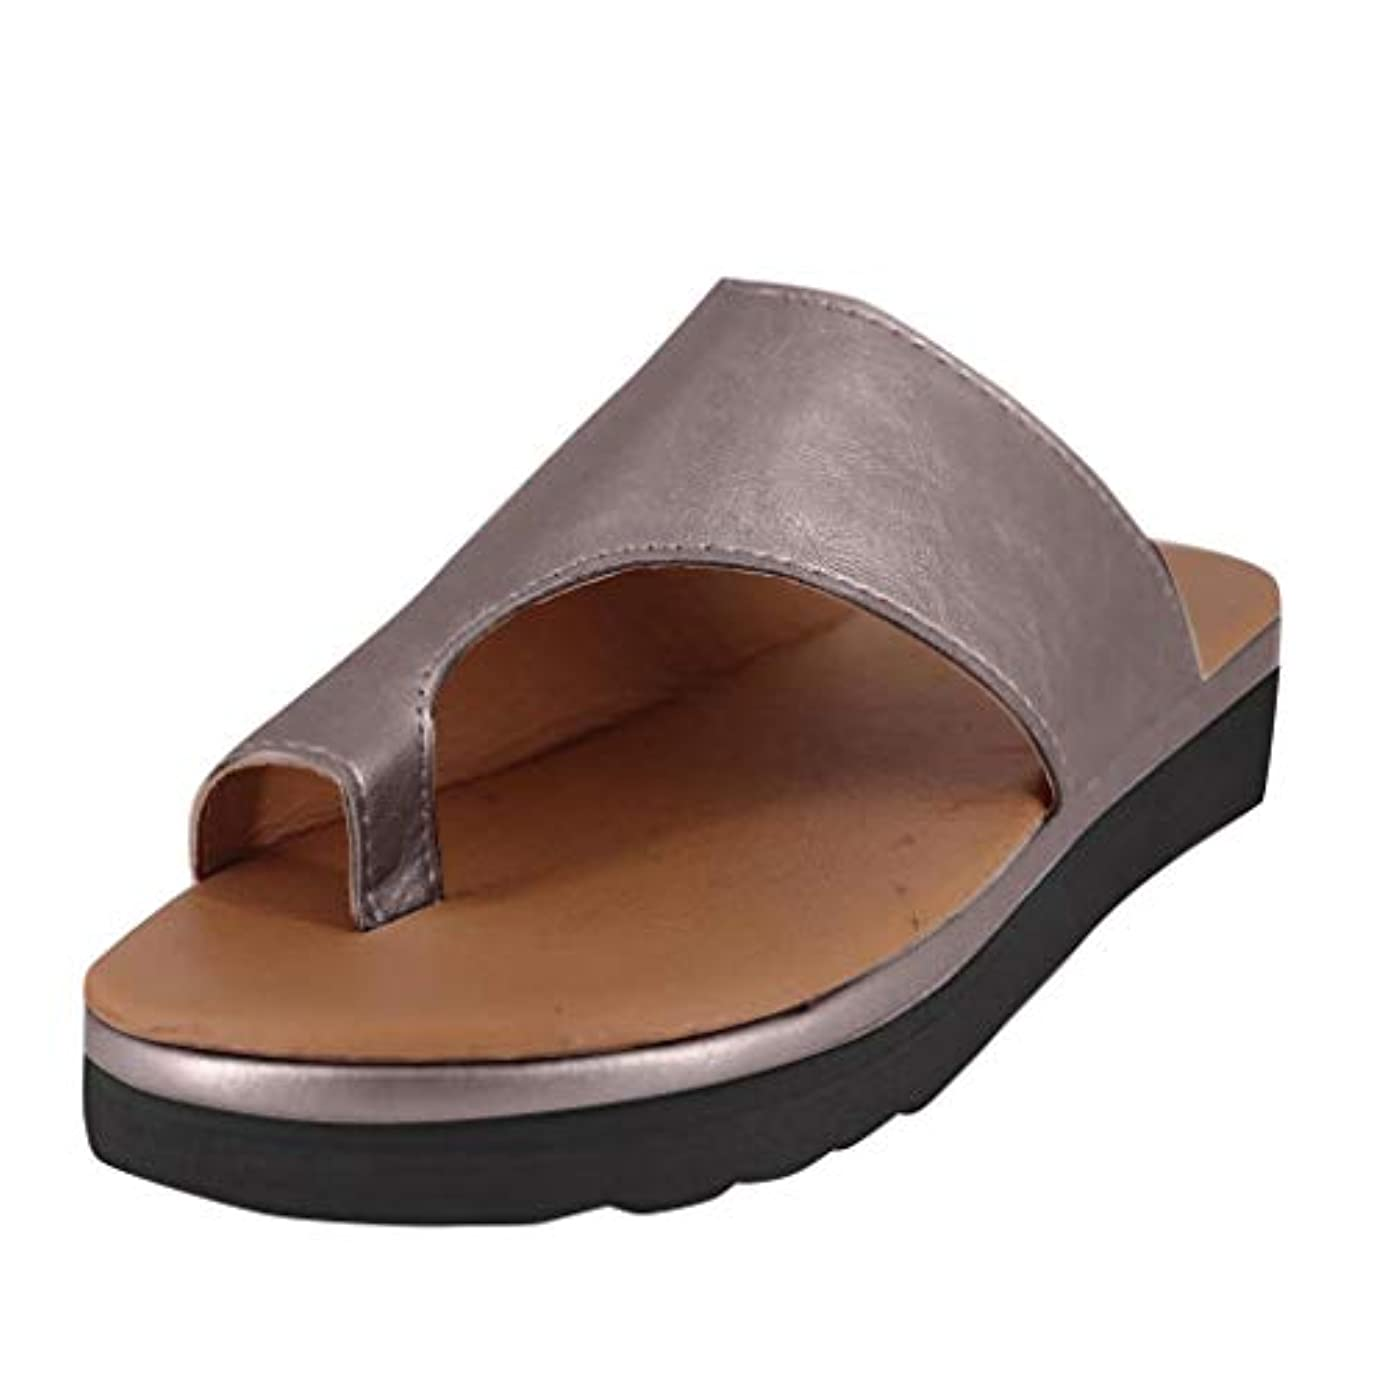 KAIKAIKOO 2019 Fashion Sandals for Women Platform with Heels Womens Summer Beach Wedge Shoes Flip Flop Slippers Flats